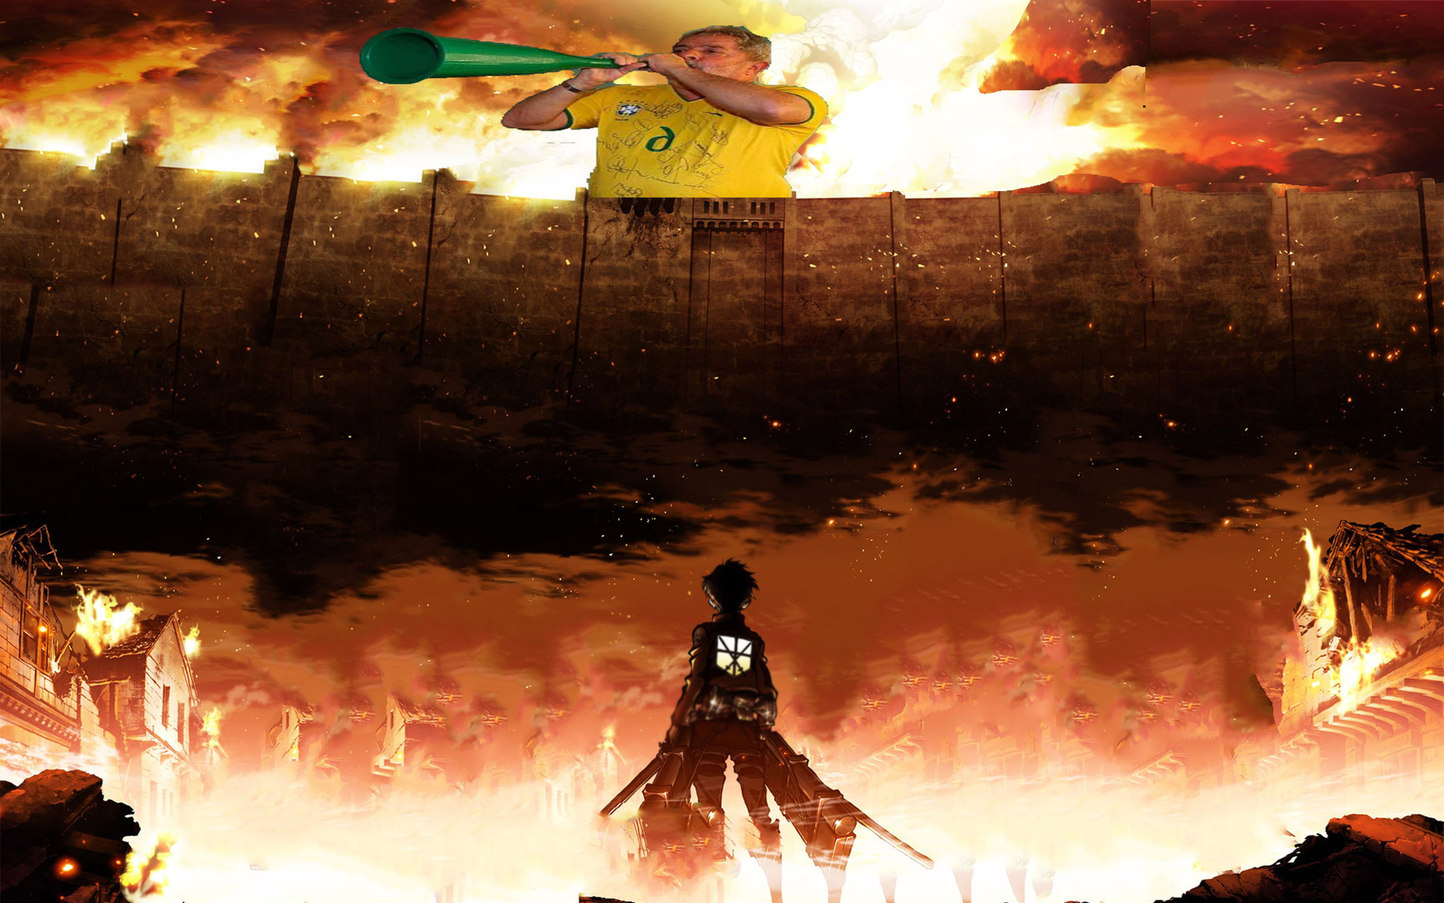 Attack on Lula - meme